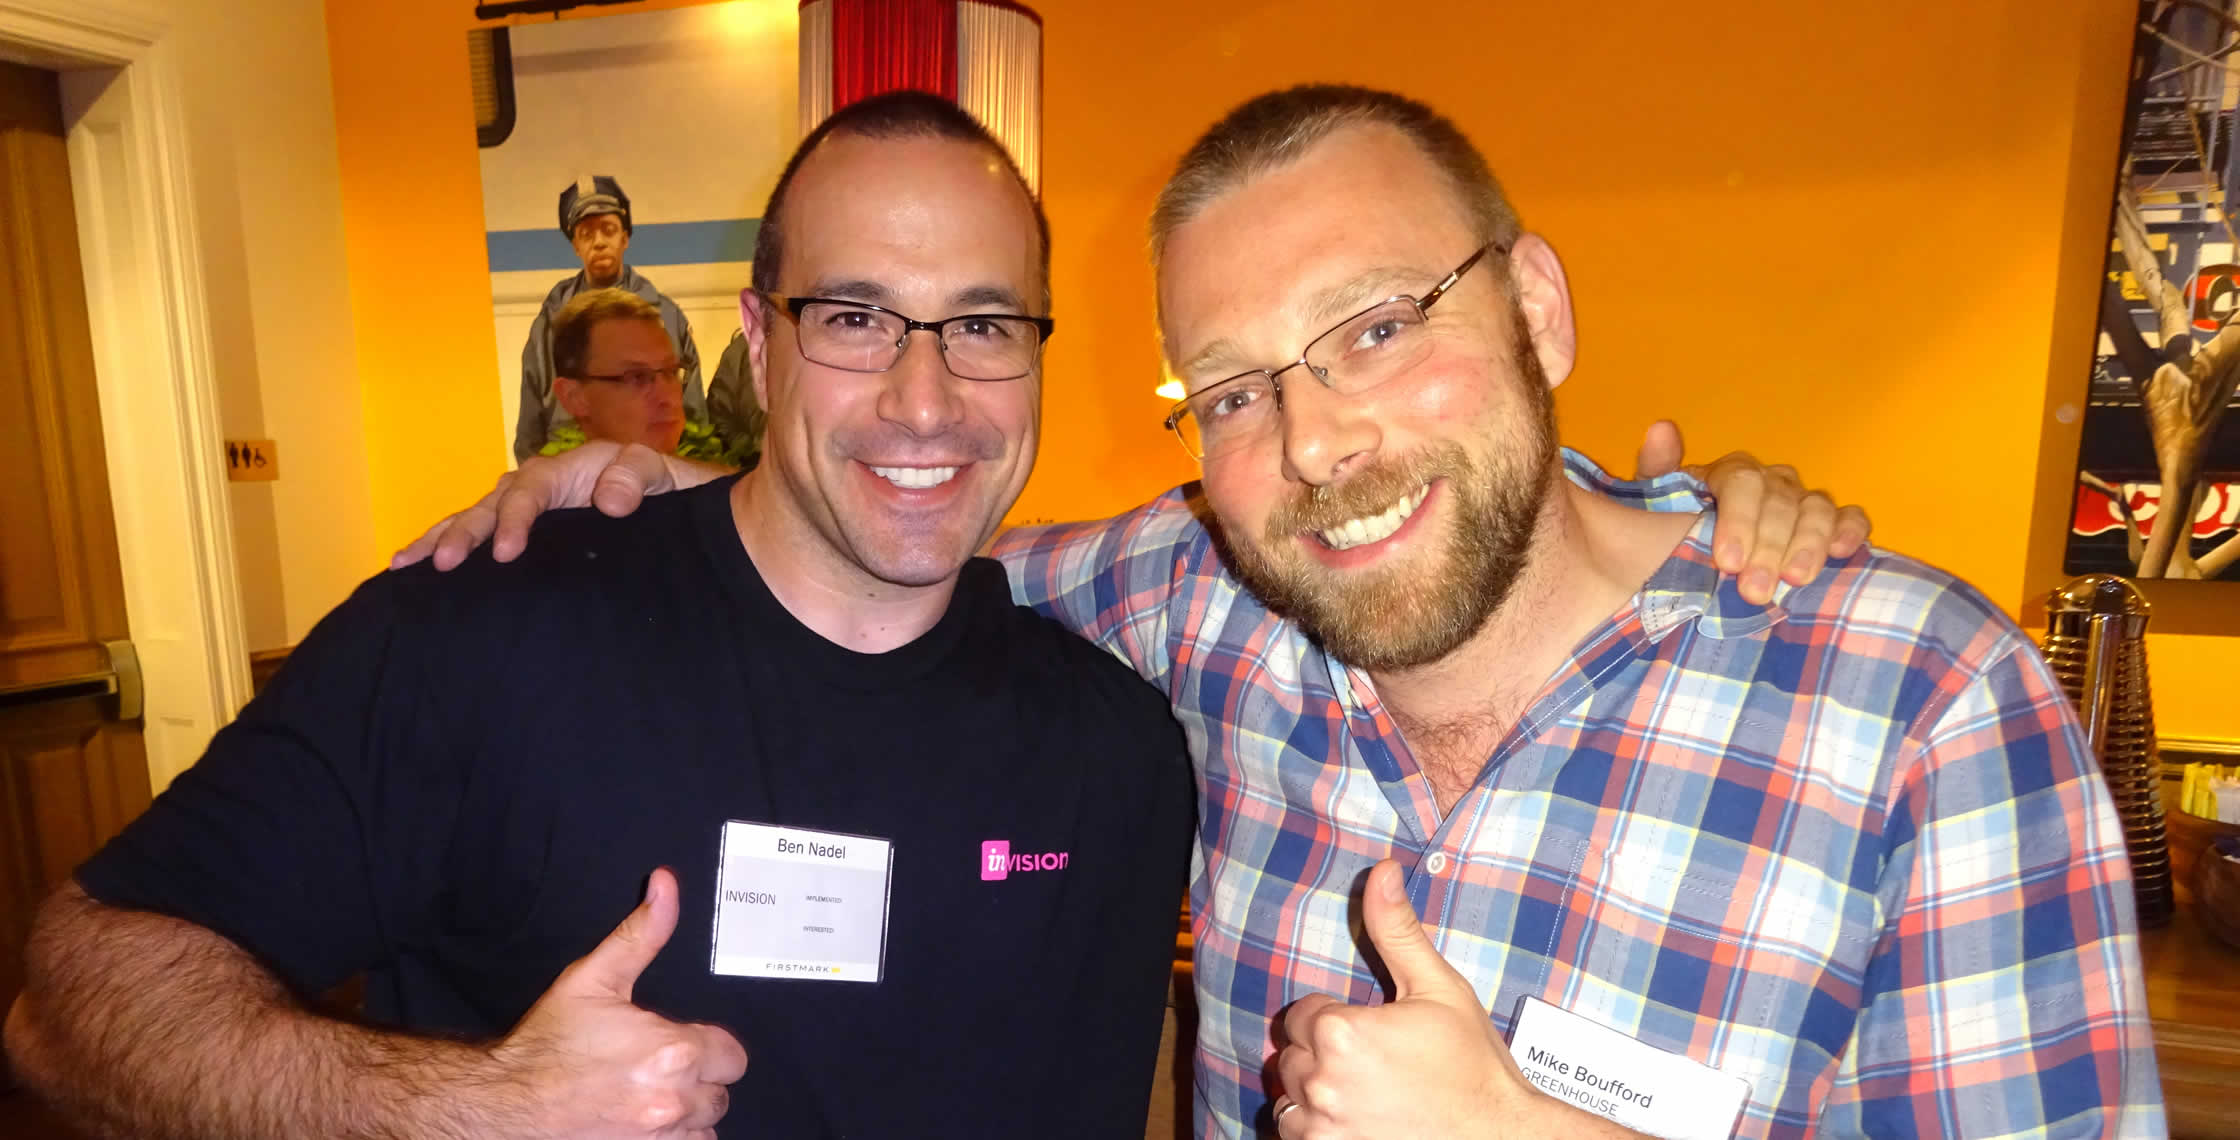 Ben Nadel at FirstMark Tech Summit (New York, NY) with: Mike Boufford